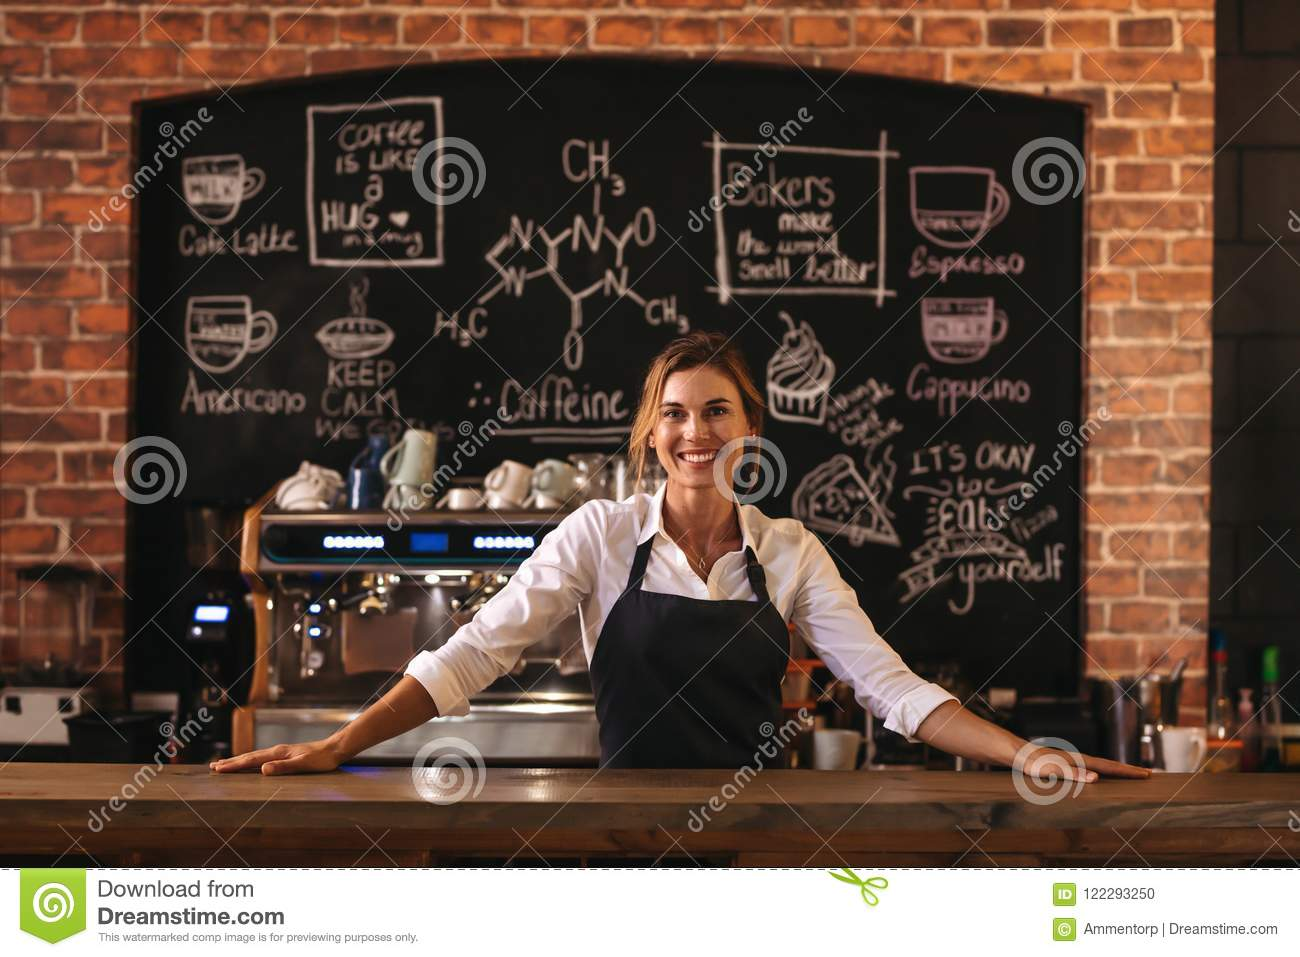 Woman cafe owner